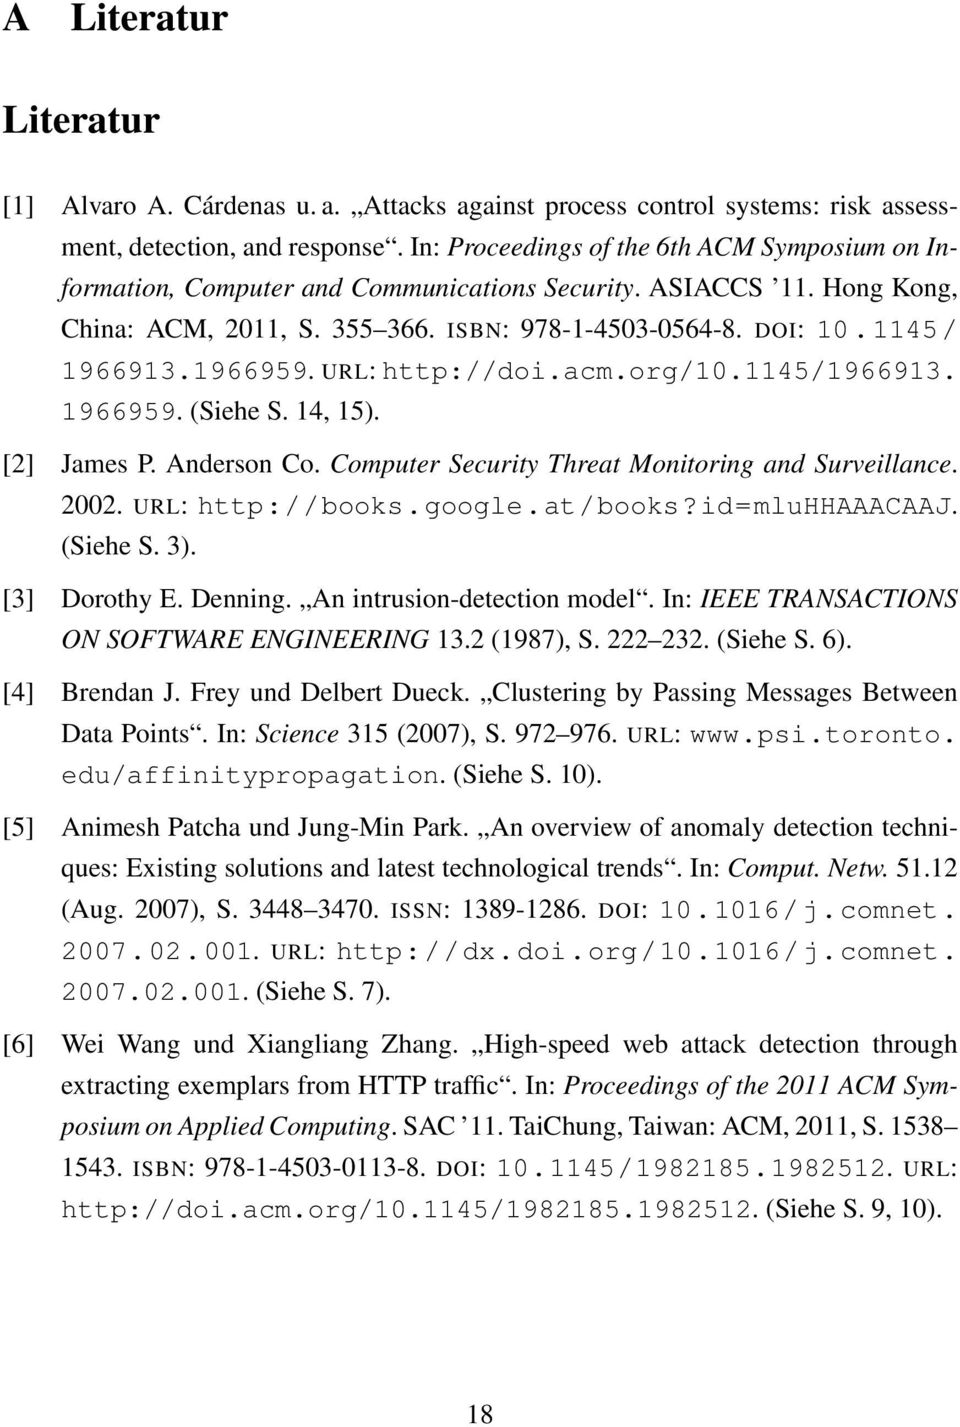 1966959. URL: http://doi.acm.org/10.1145/1966913. 1966959. (Siehe S. 14, 15). [2] James P. Anderson Co. Computer Security Threat Monitoring and Surveillance. 2002. URL: http://books.google.at/books?